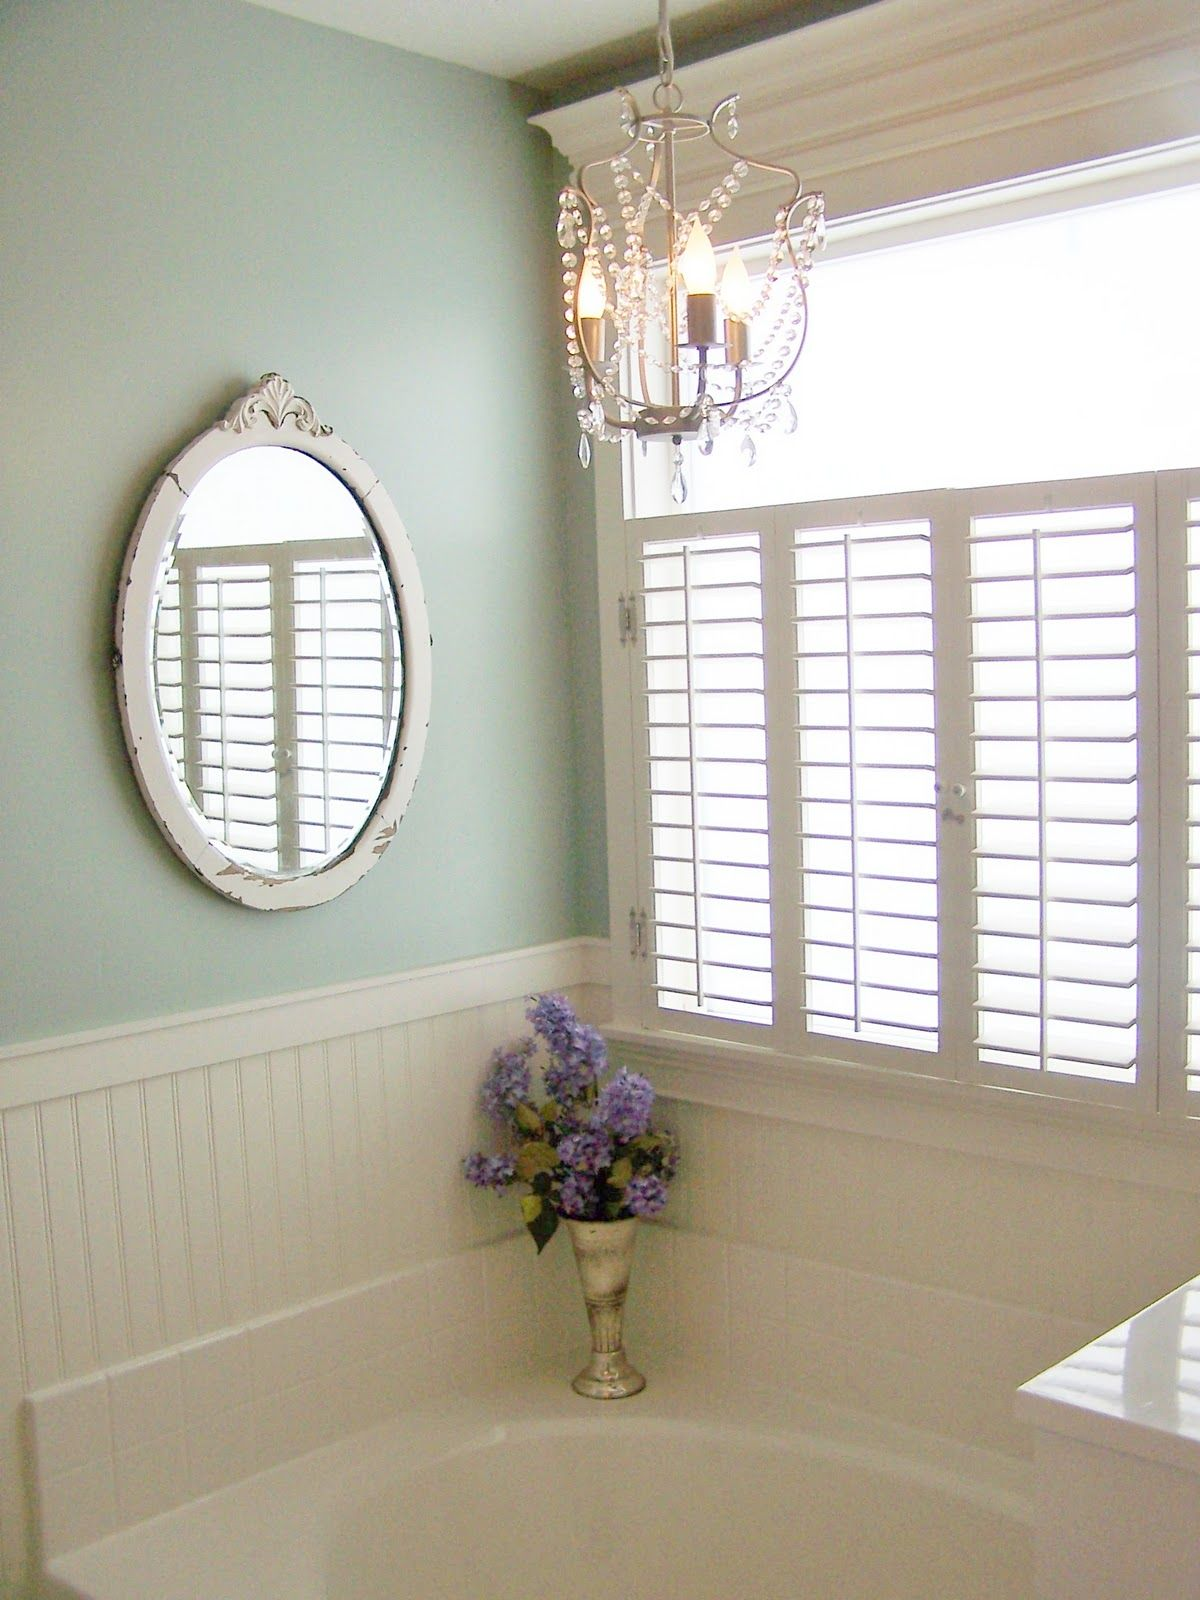 Using Window Shutters For The Bathroom Window.yes Love This For Our  Addition We Are